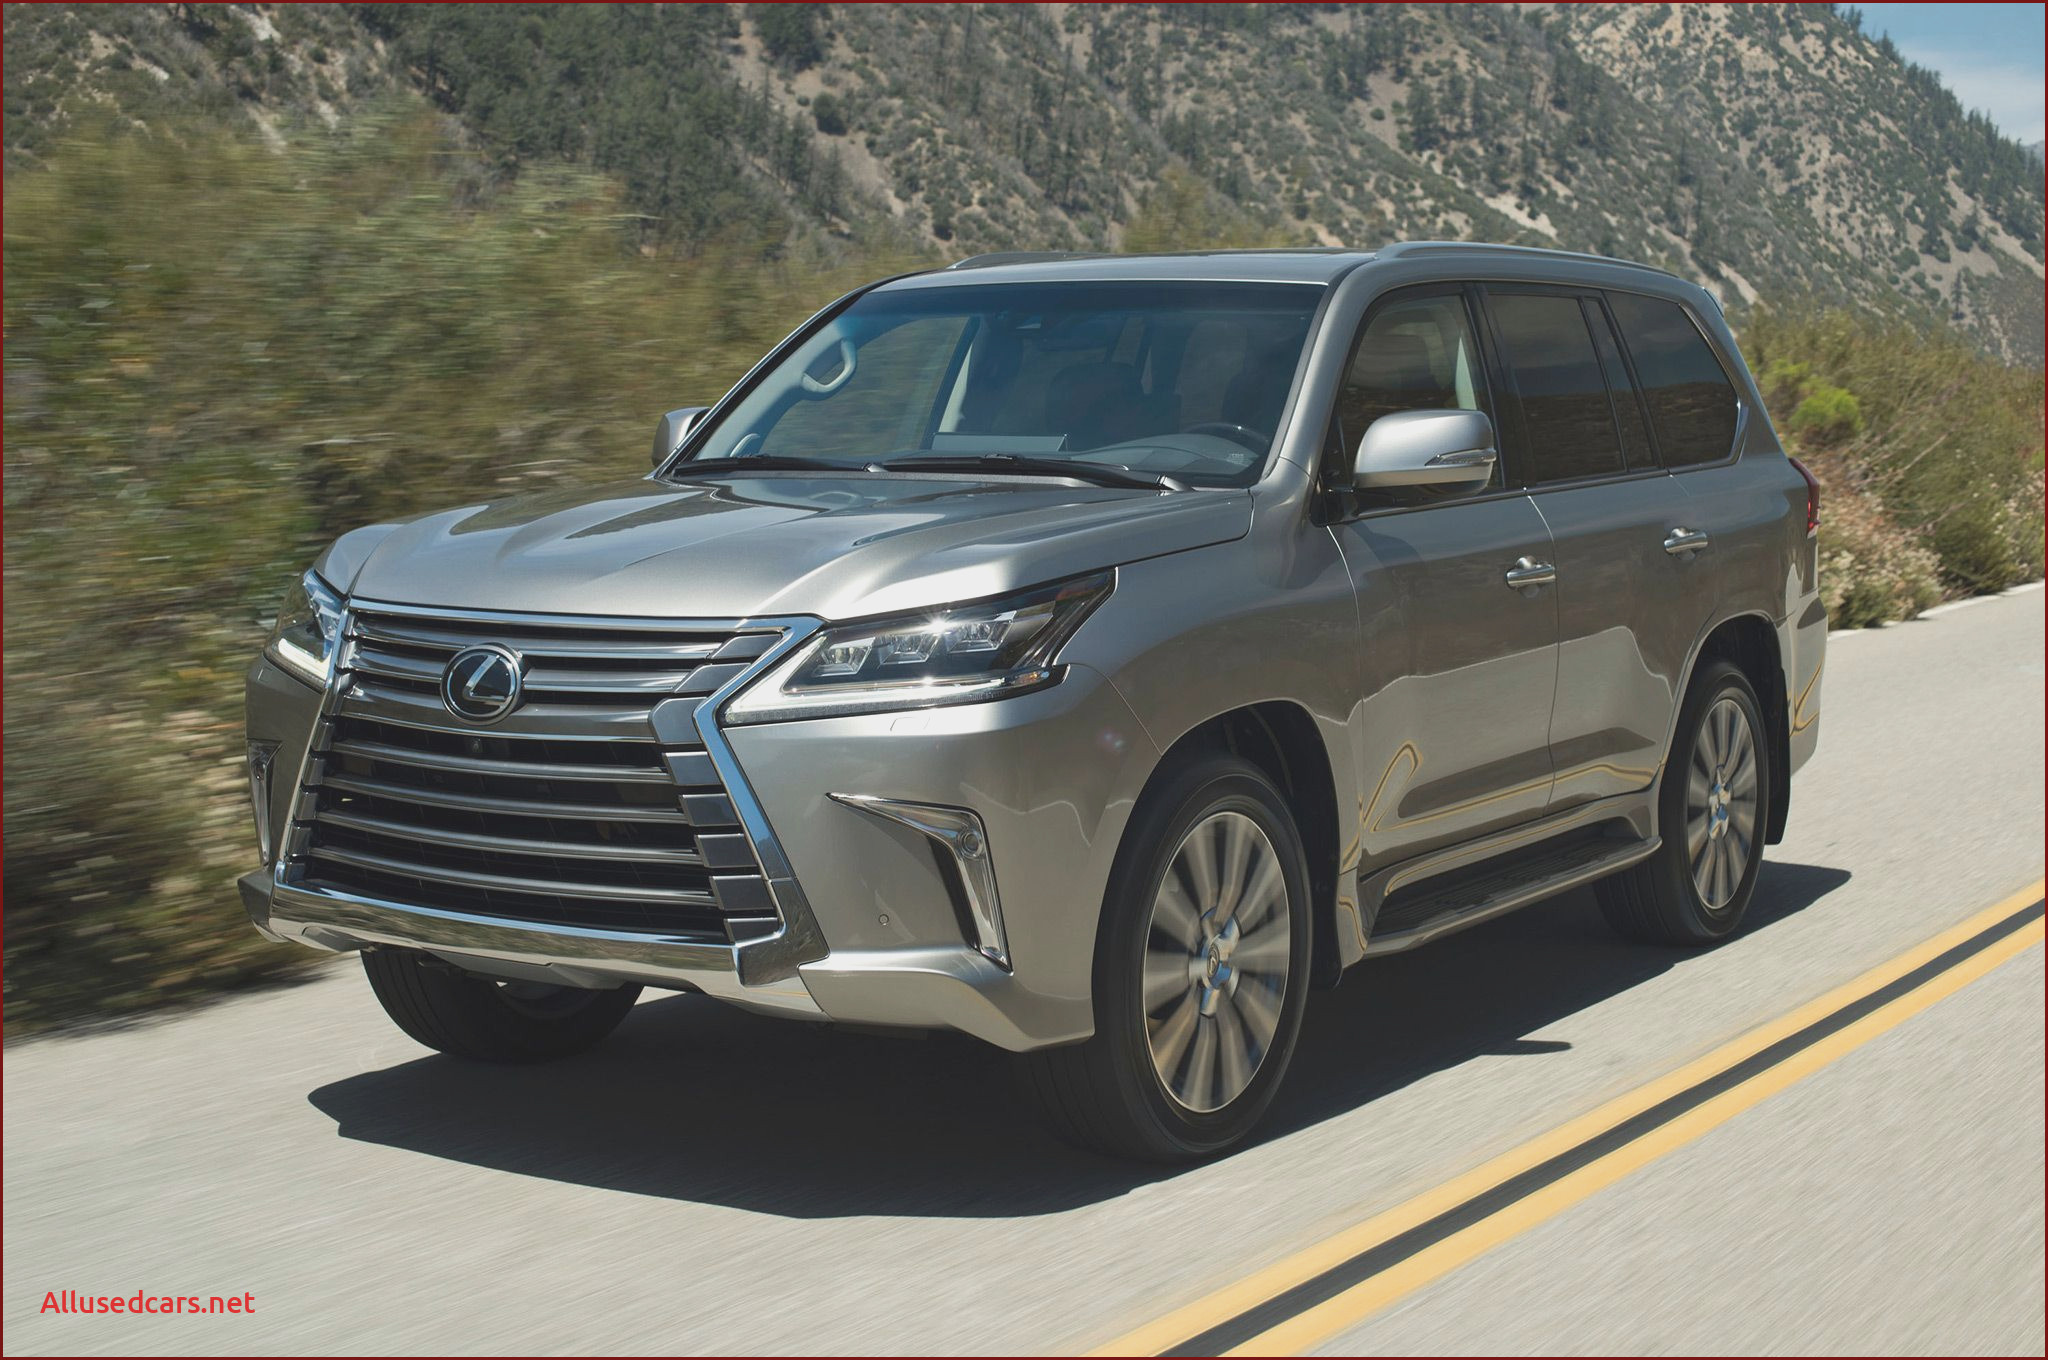 Lexus 2017 Lovely 2014 Lexus Lx 570 Owners Manual Pdf at Manuals Library